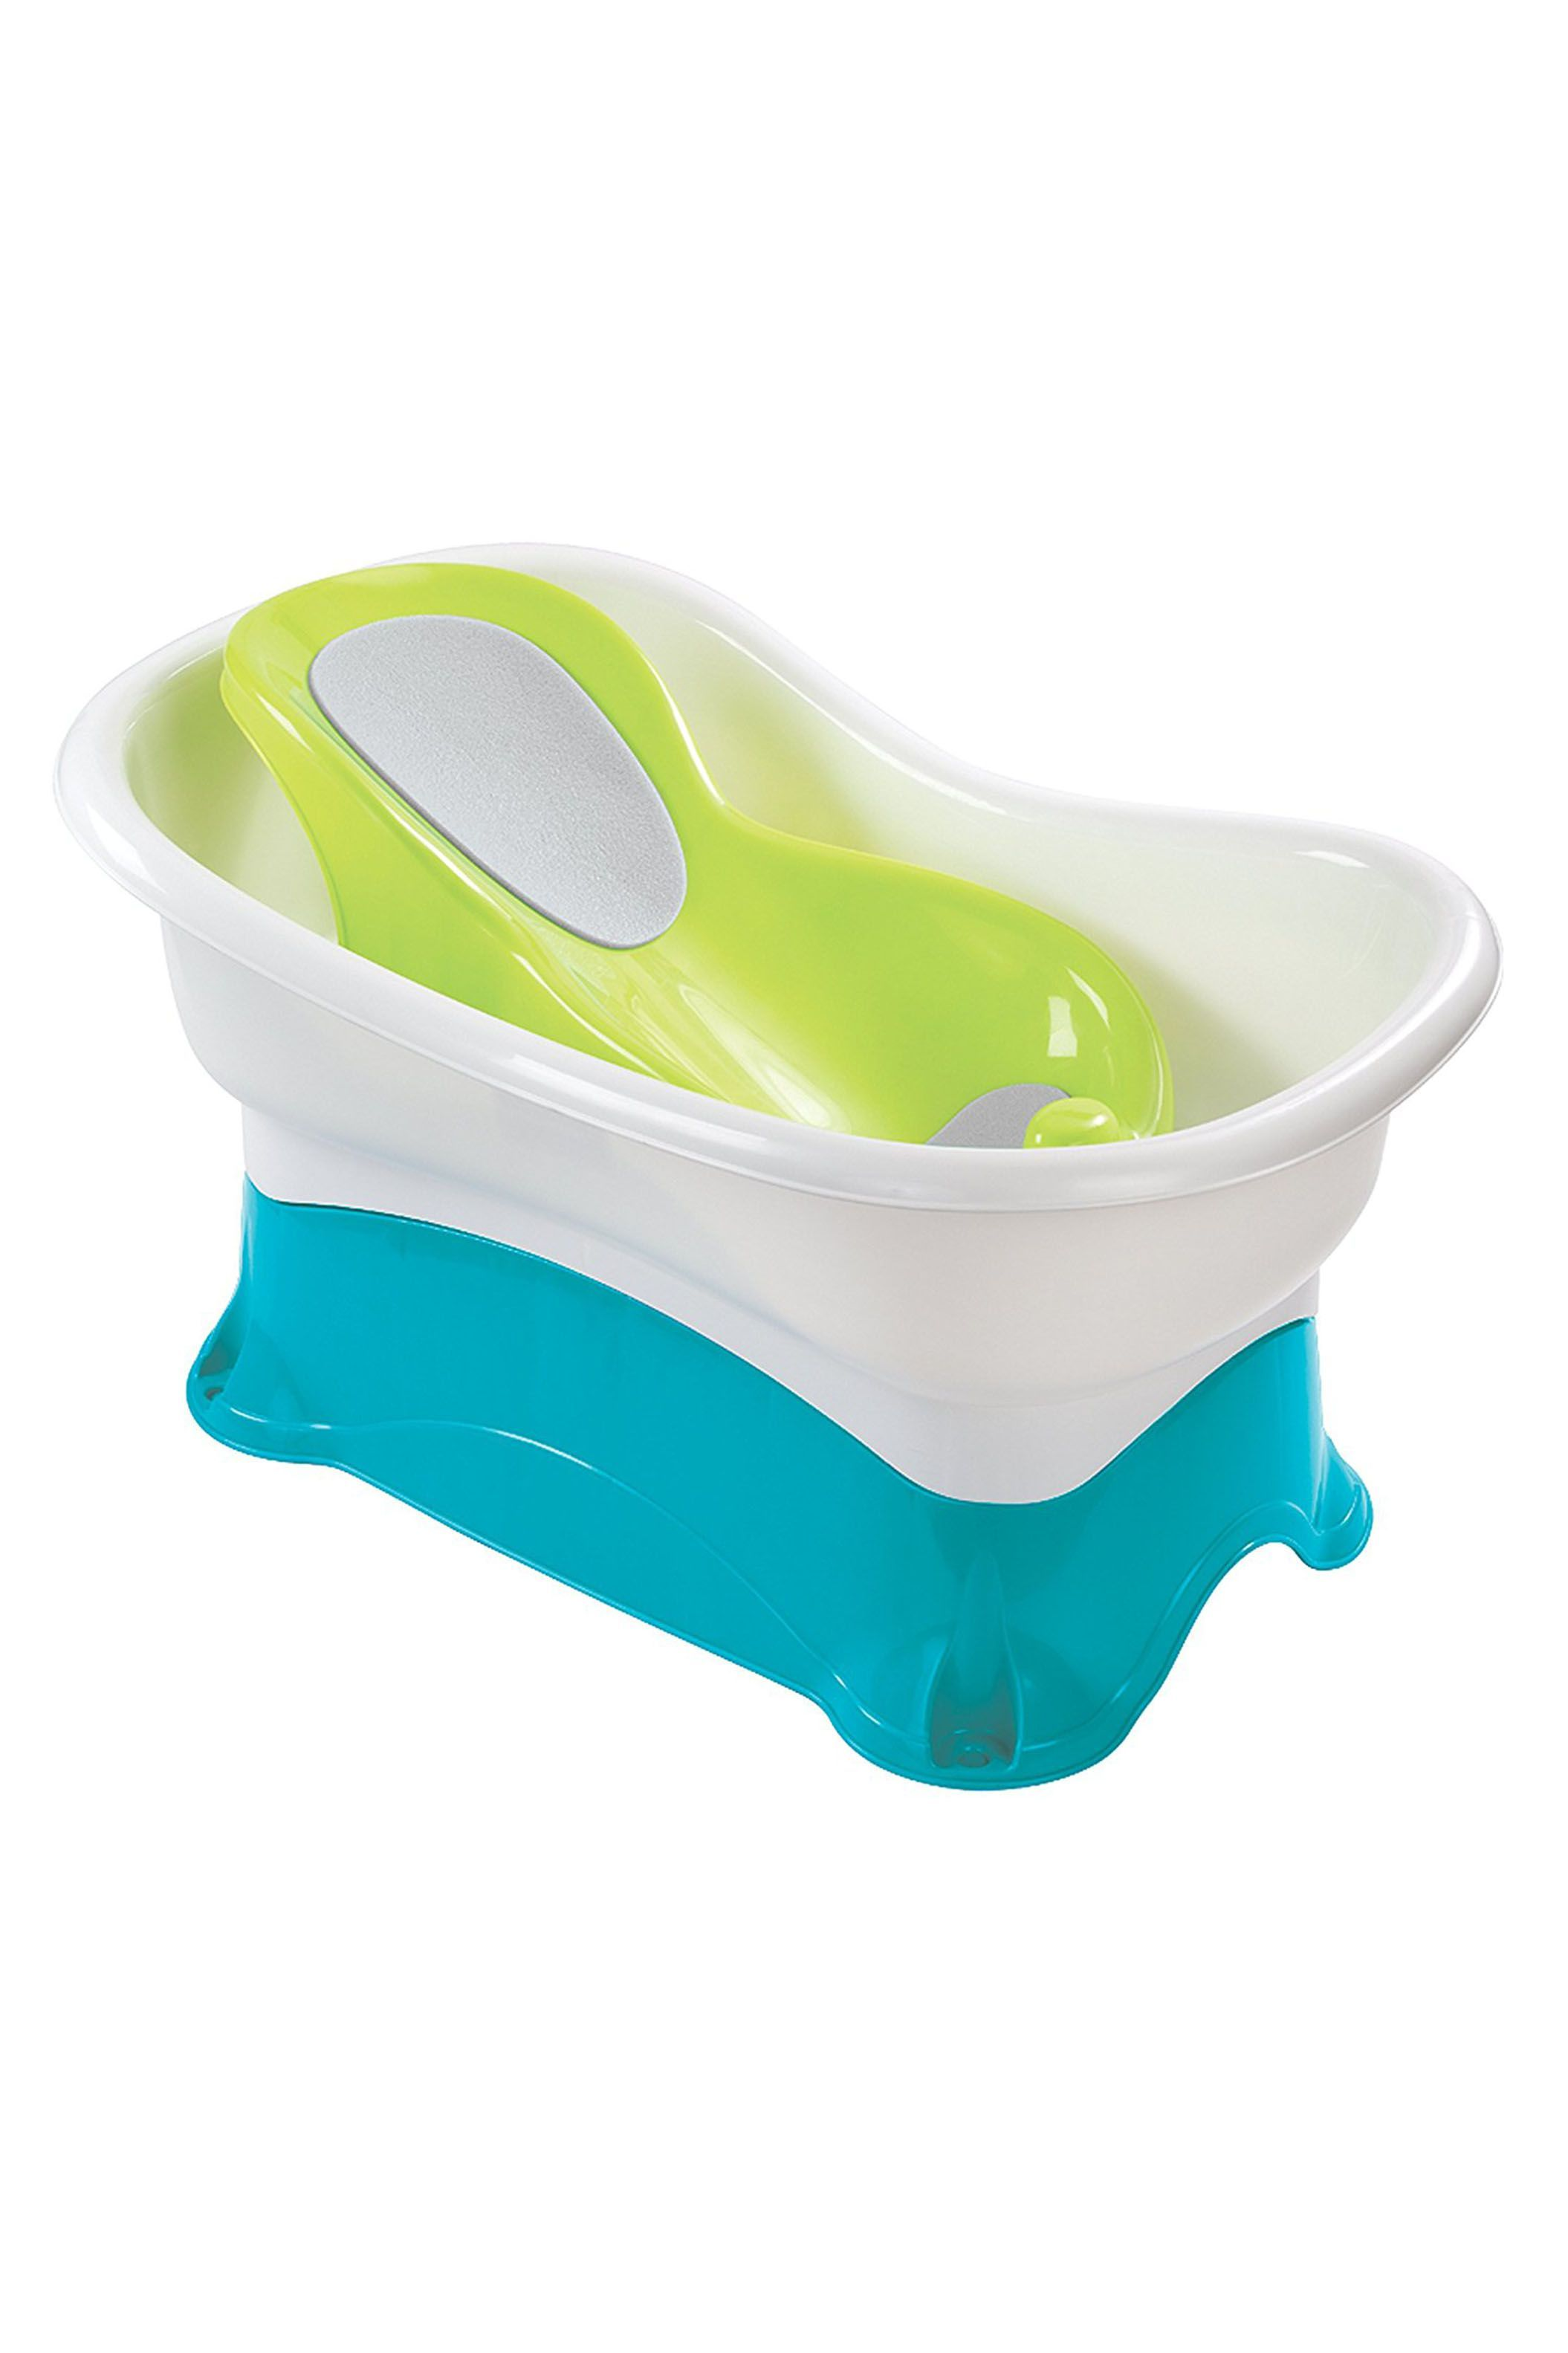 Best Baby Bath Tubs from the Good Housekeeping Institute - Top ...